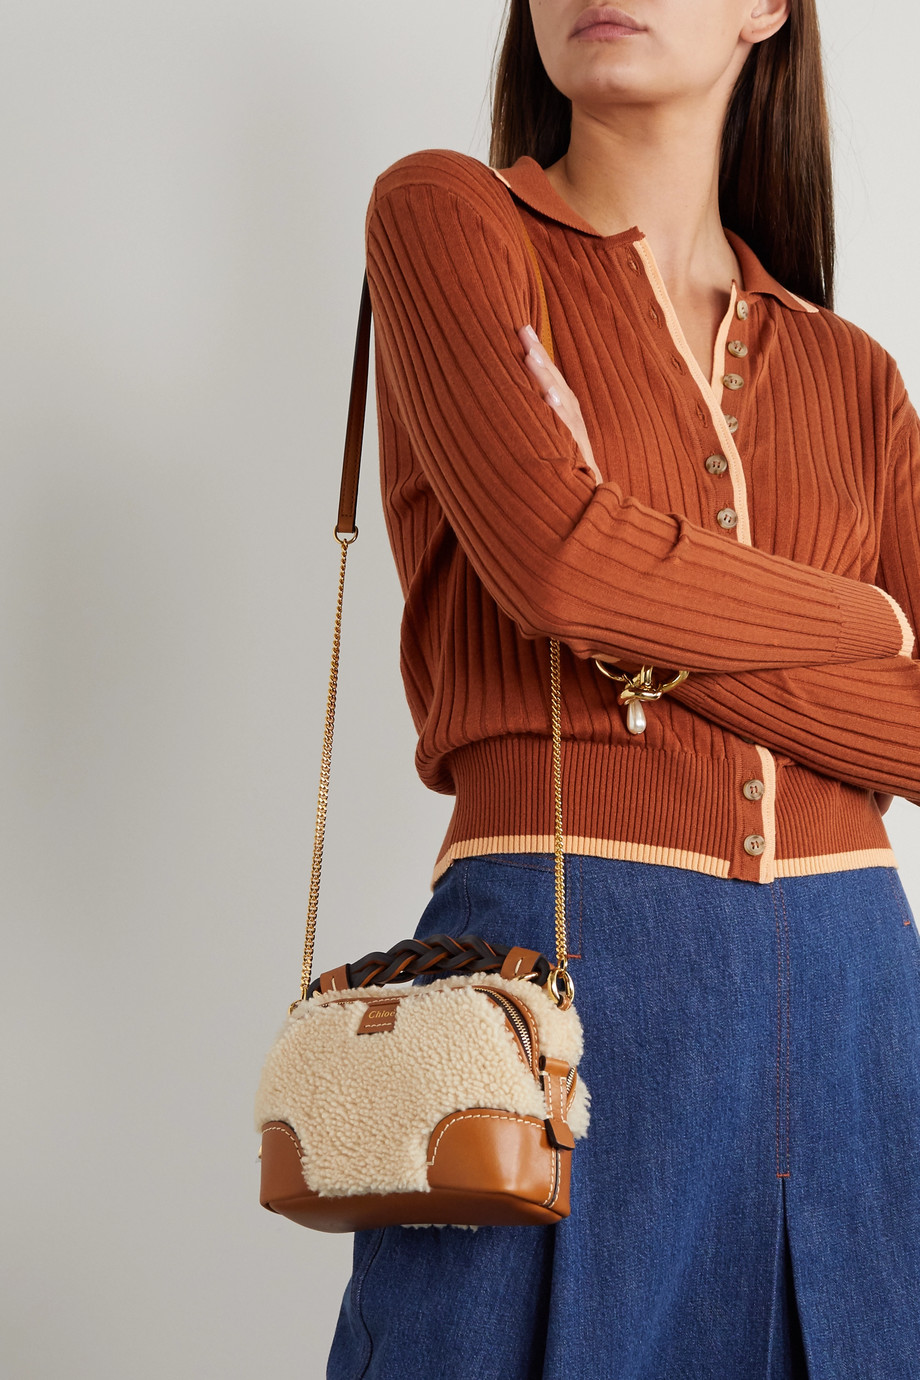 Chloé Daria mini leather-trimmed shearling tote